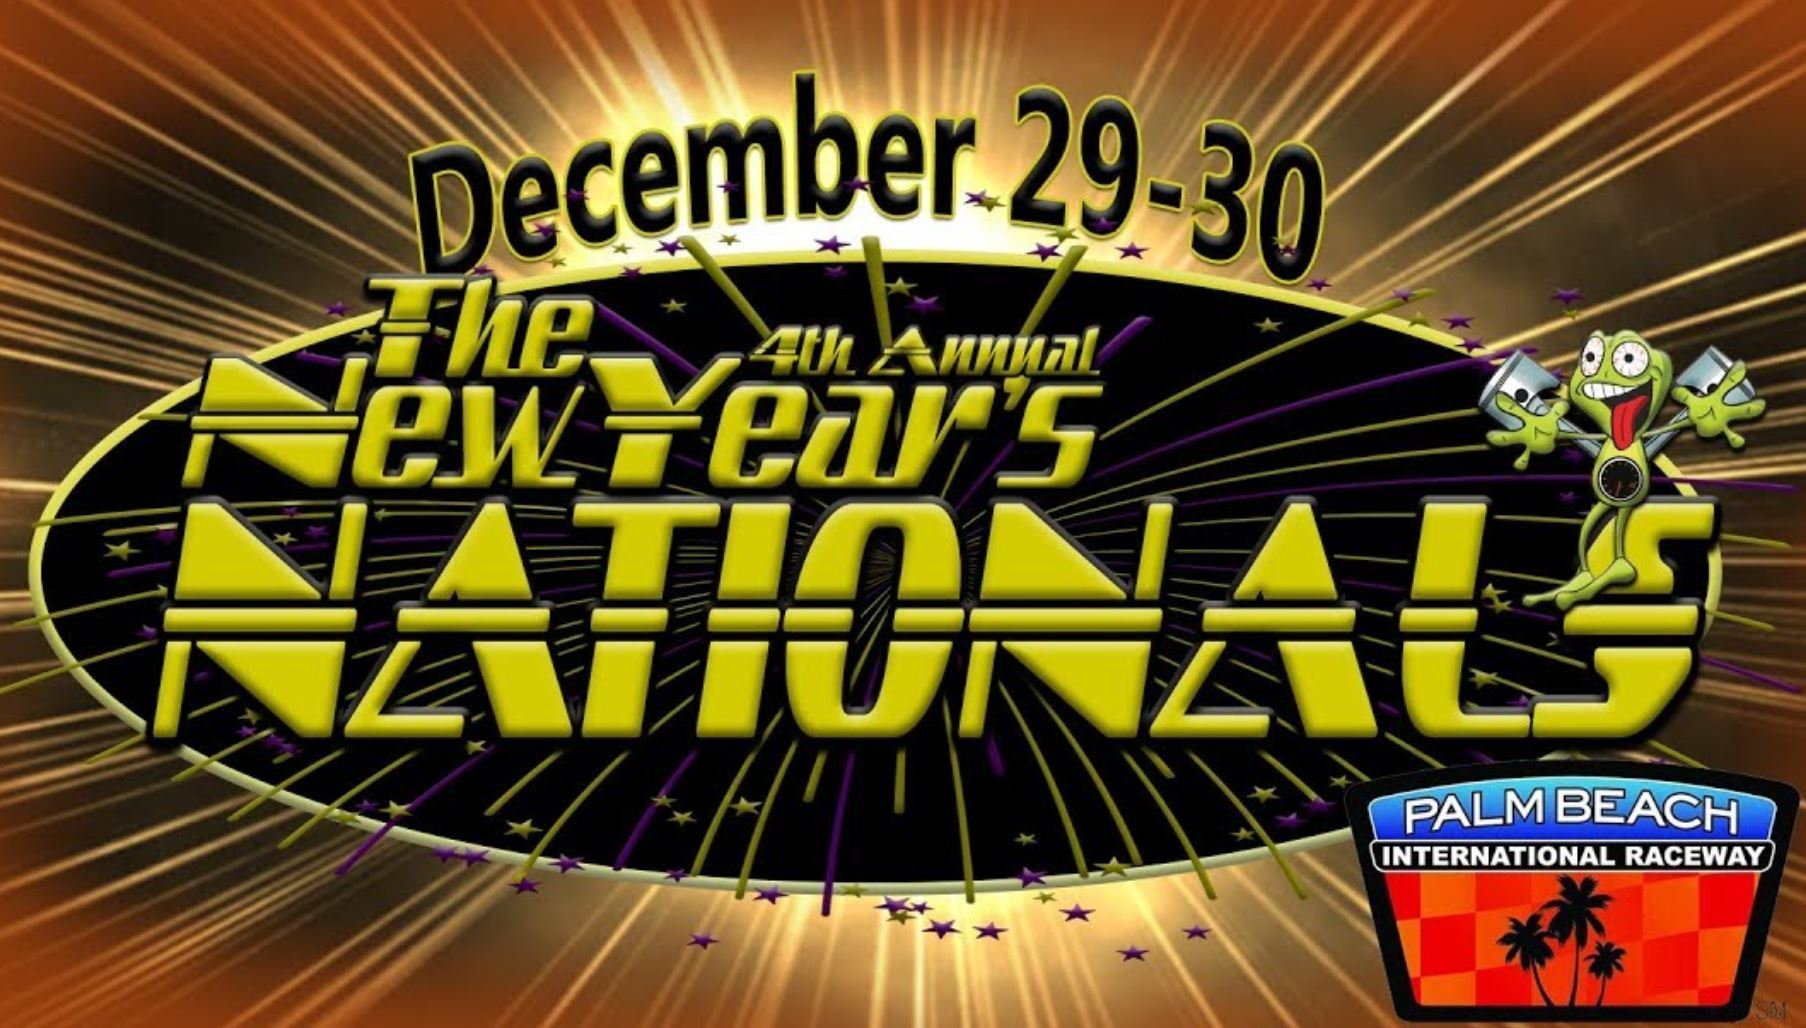 LIVE RACING VIDEO: The 4th Annual New Years Nationals From Palm Beach Florida